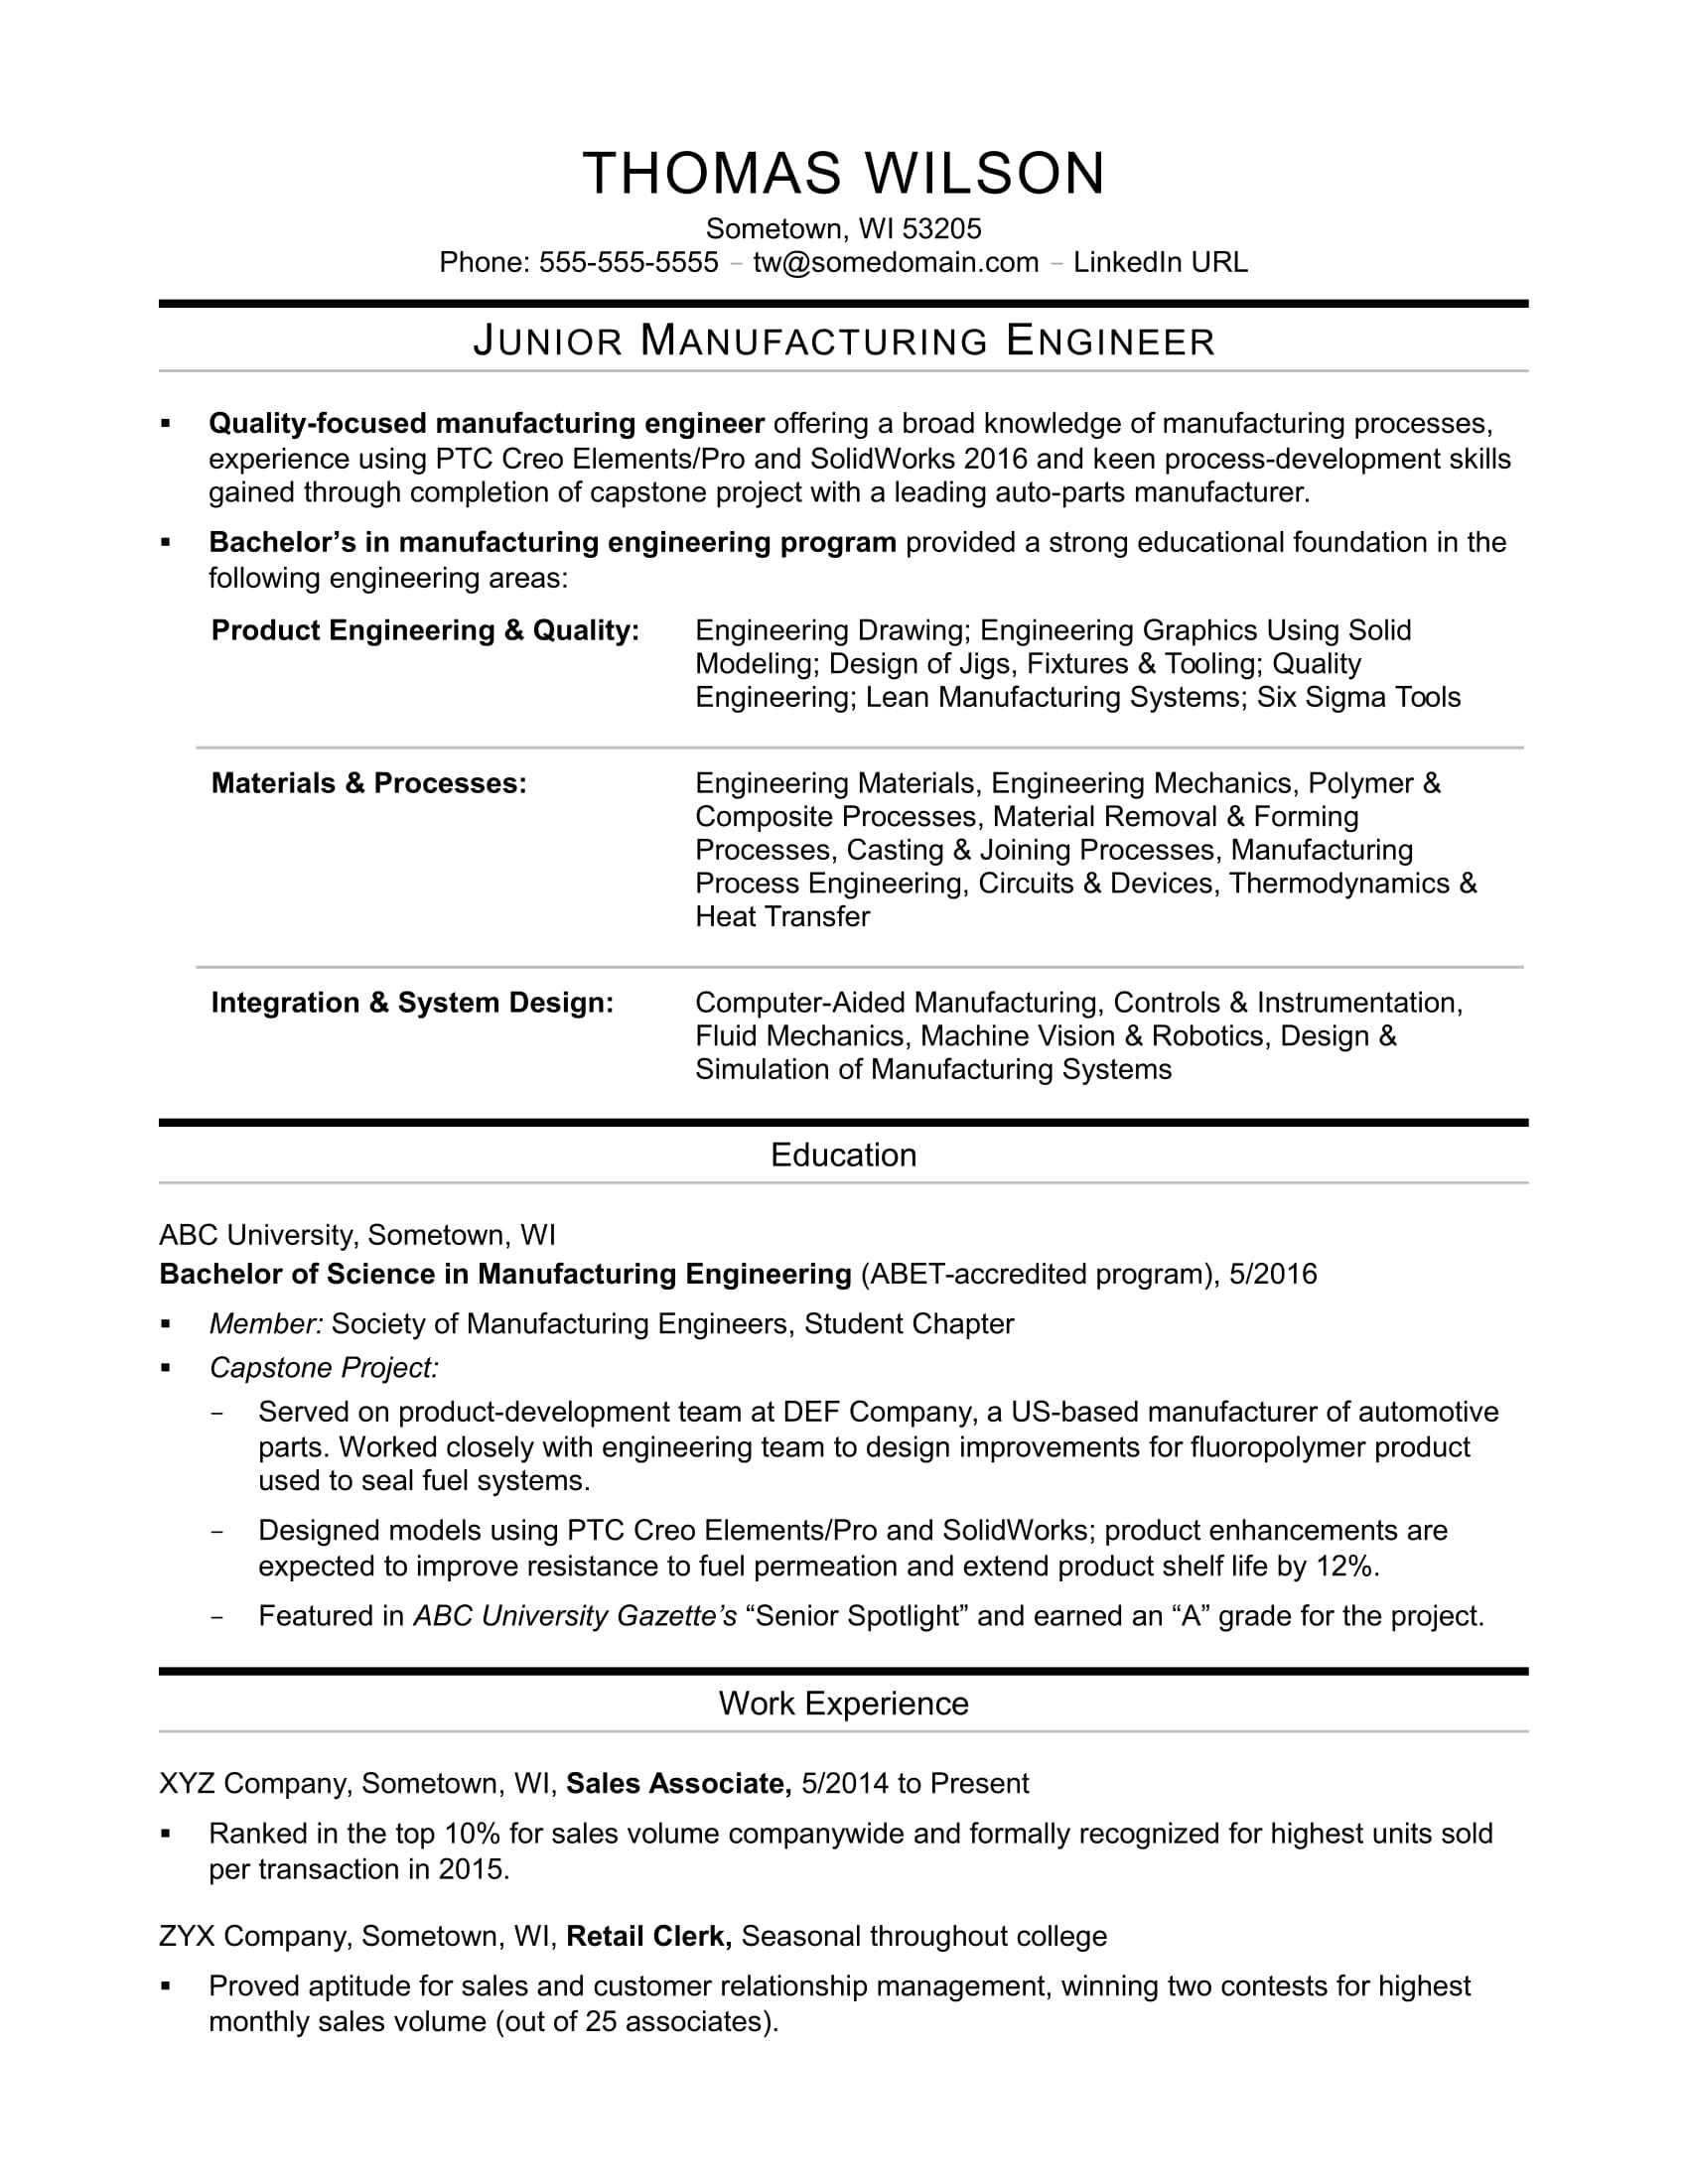 sample resume for an entry level manufacturing engineer monster engineering caretaker Resume Entry Level Engineering Resume